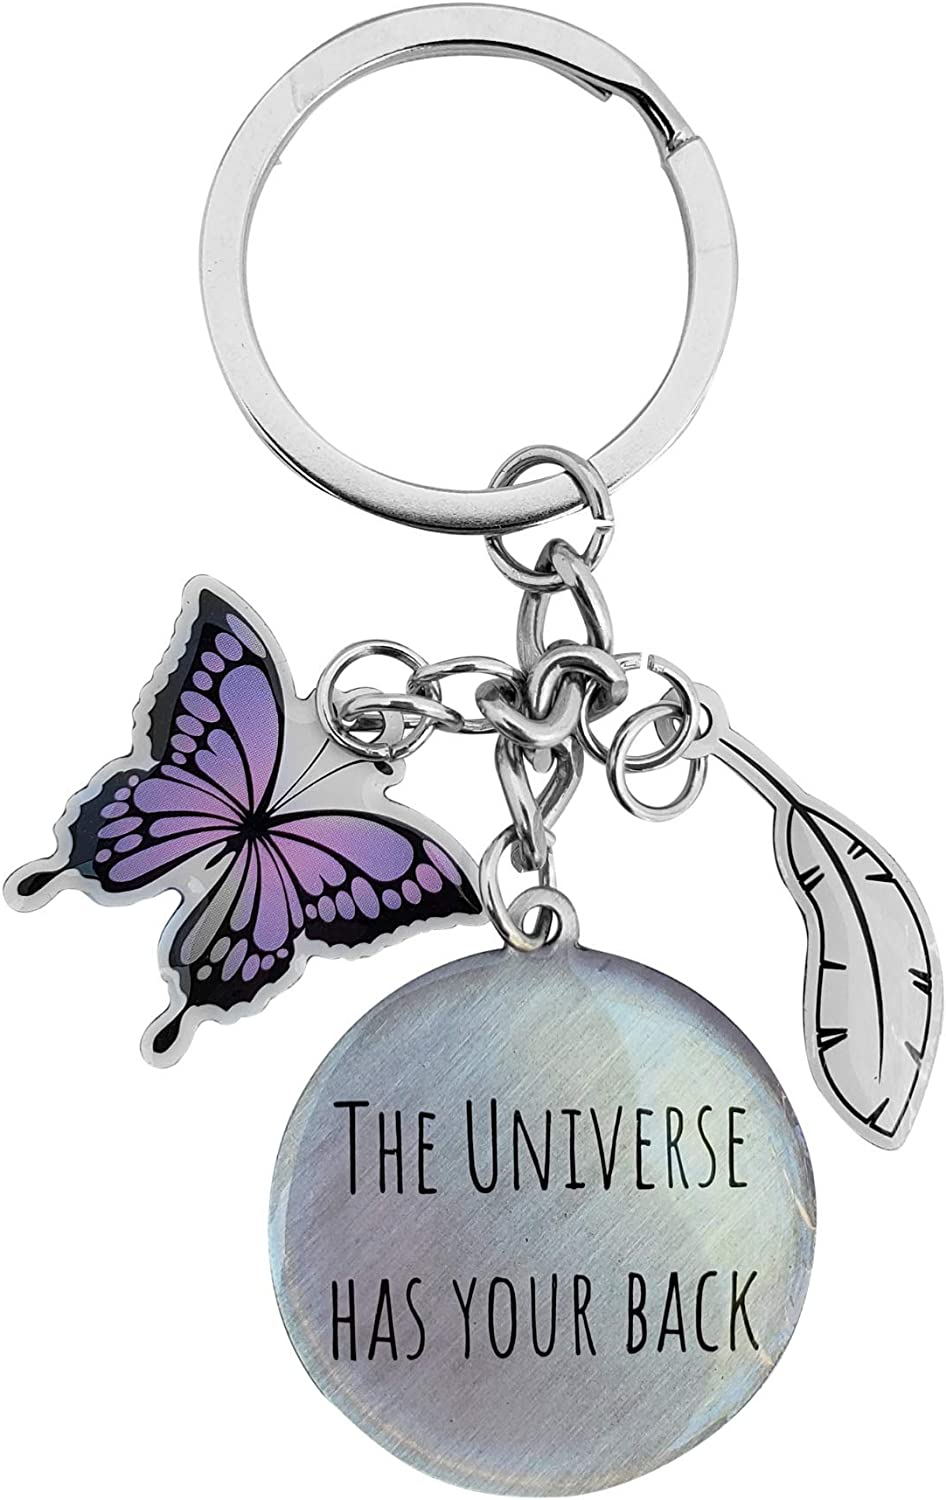 Inspirational Butterfly Keychain - With Law Of Attraction Quotes, Gifts For Women By Positively Woo Woo